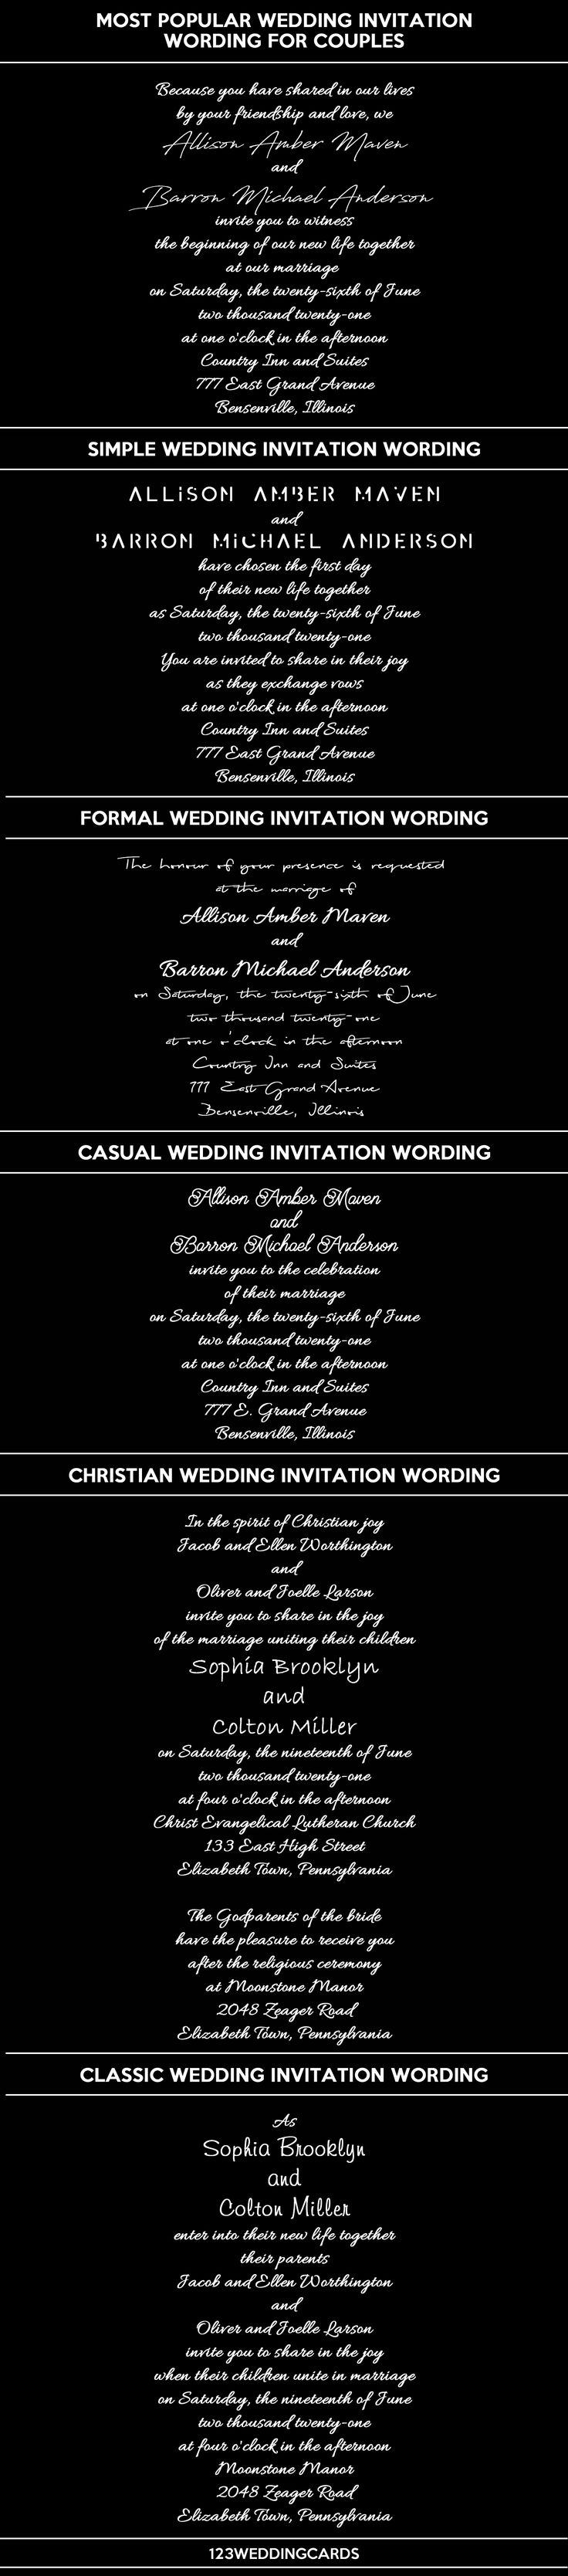 muslim wedding card invitation quotes%0A Pick rich and classy wedding wording text and wedding invitation wording  for your wedding invitations from